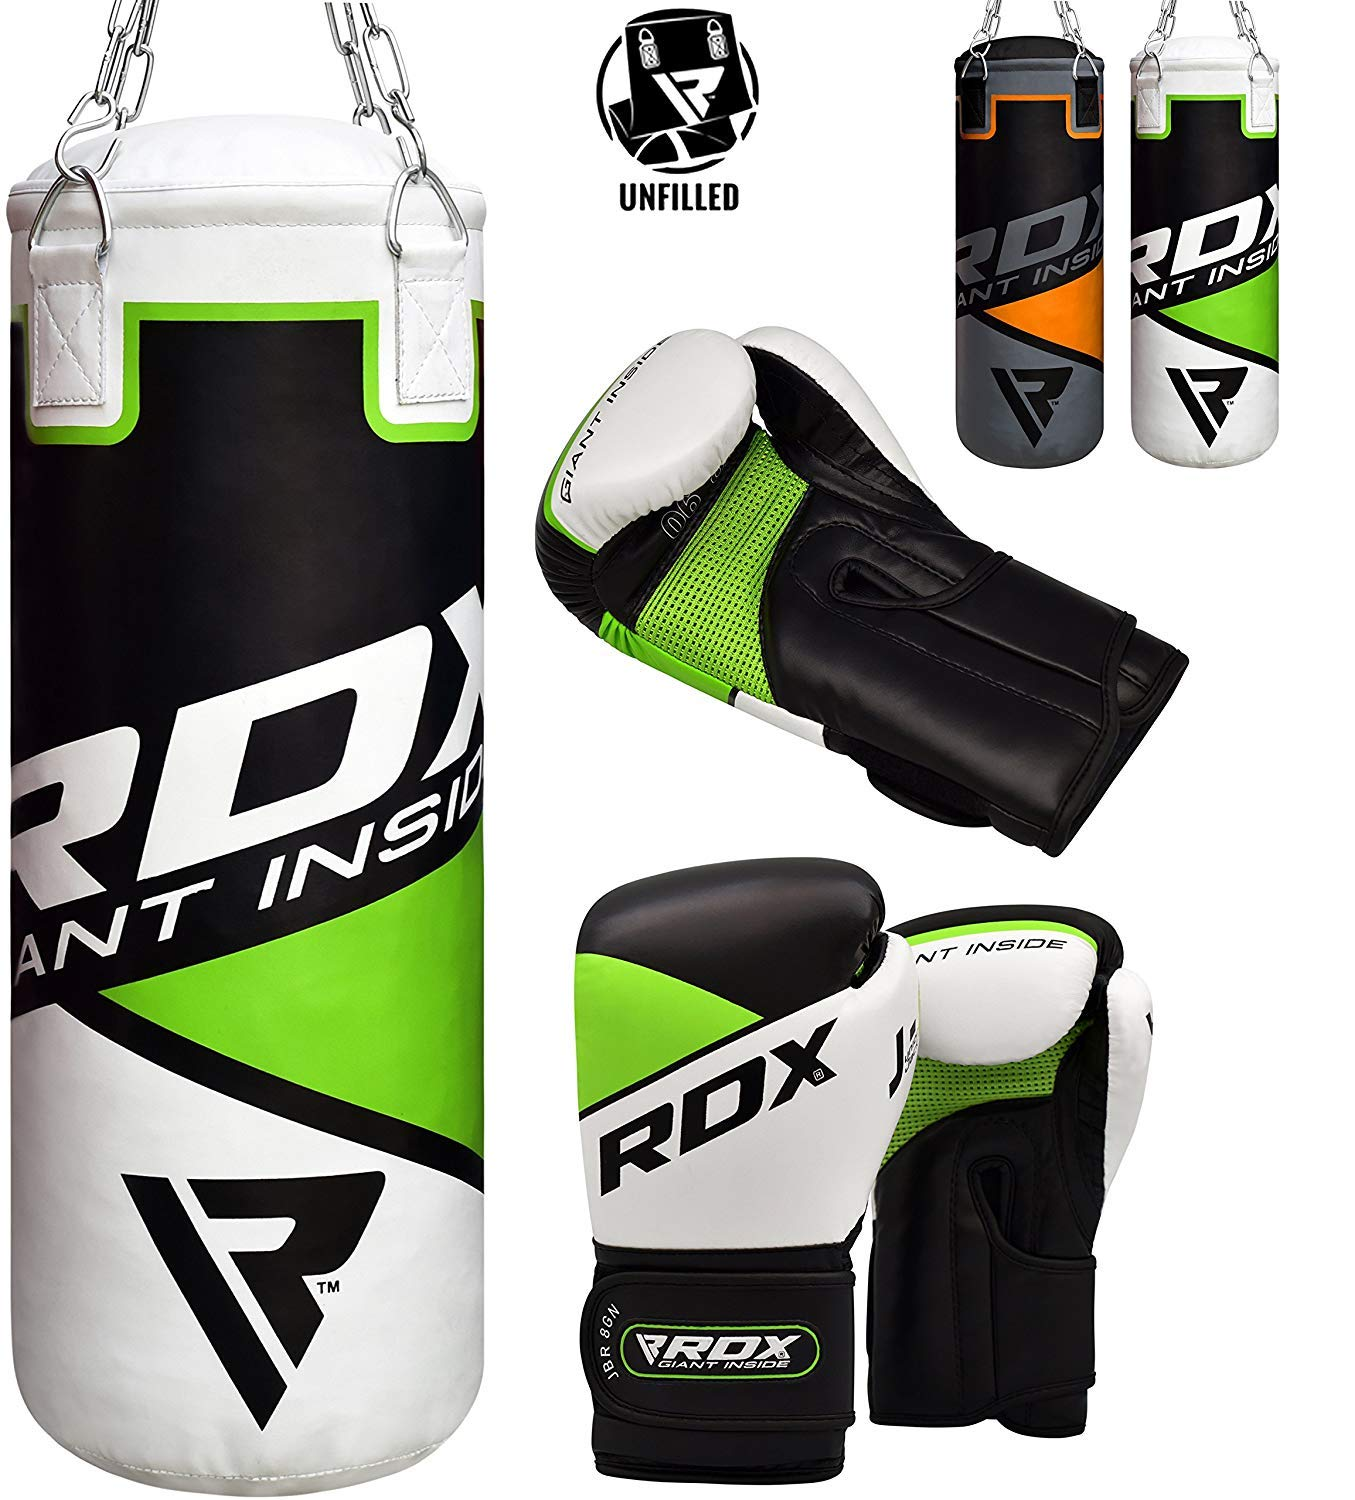 RDX Kids Punch Bag UNFILLED Set Junior Kick Boxing 2FT Heavy MMA Training Youth Gloves Punching Mitts Muay Thai Martial Arts by RDX